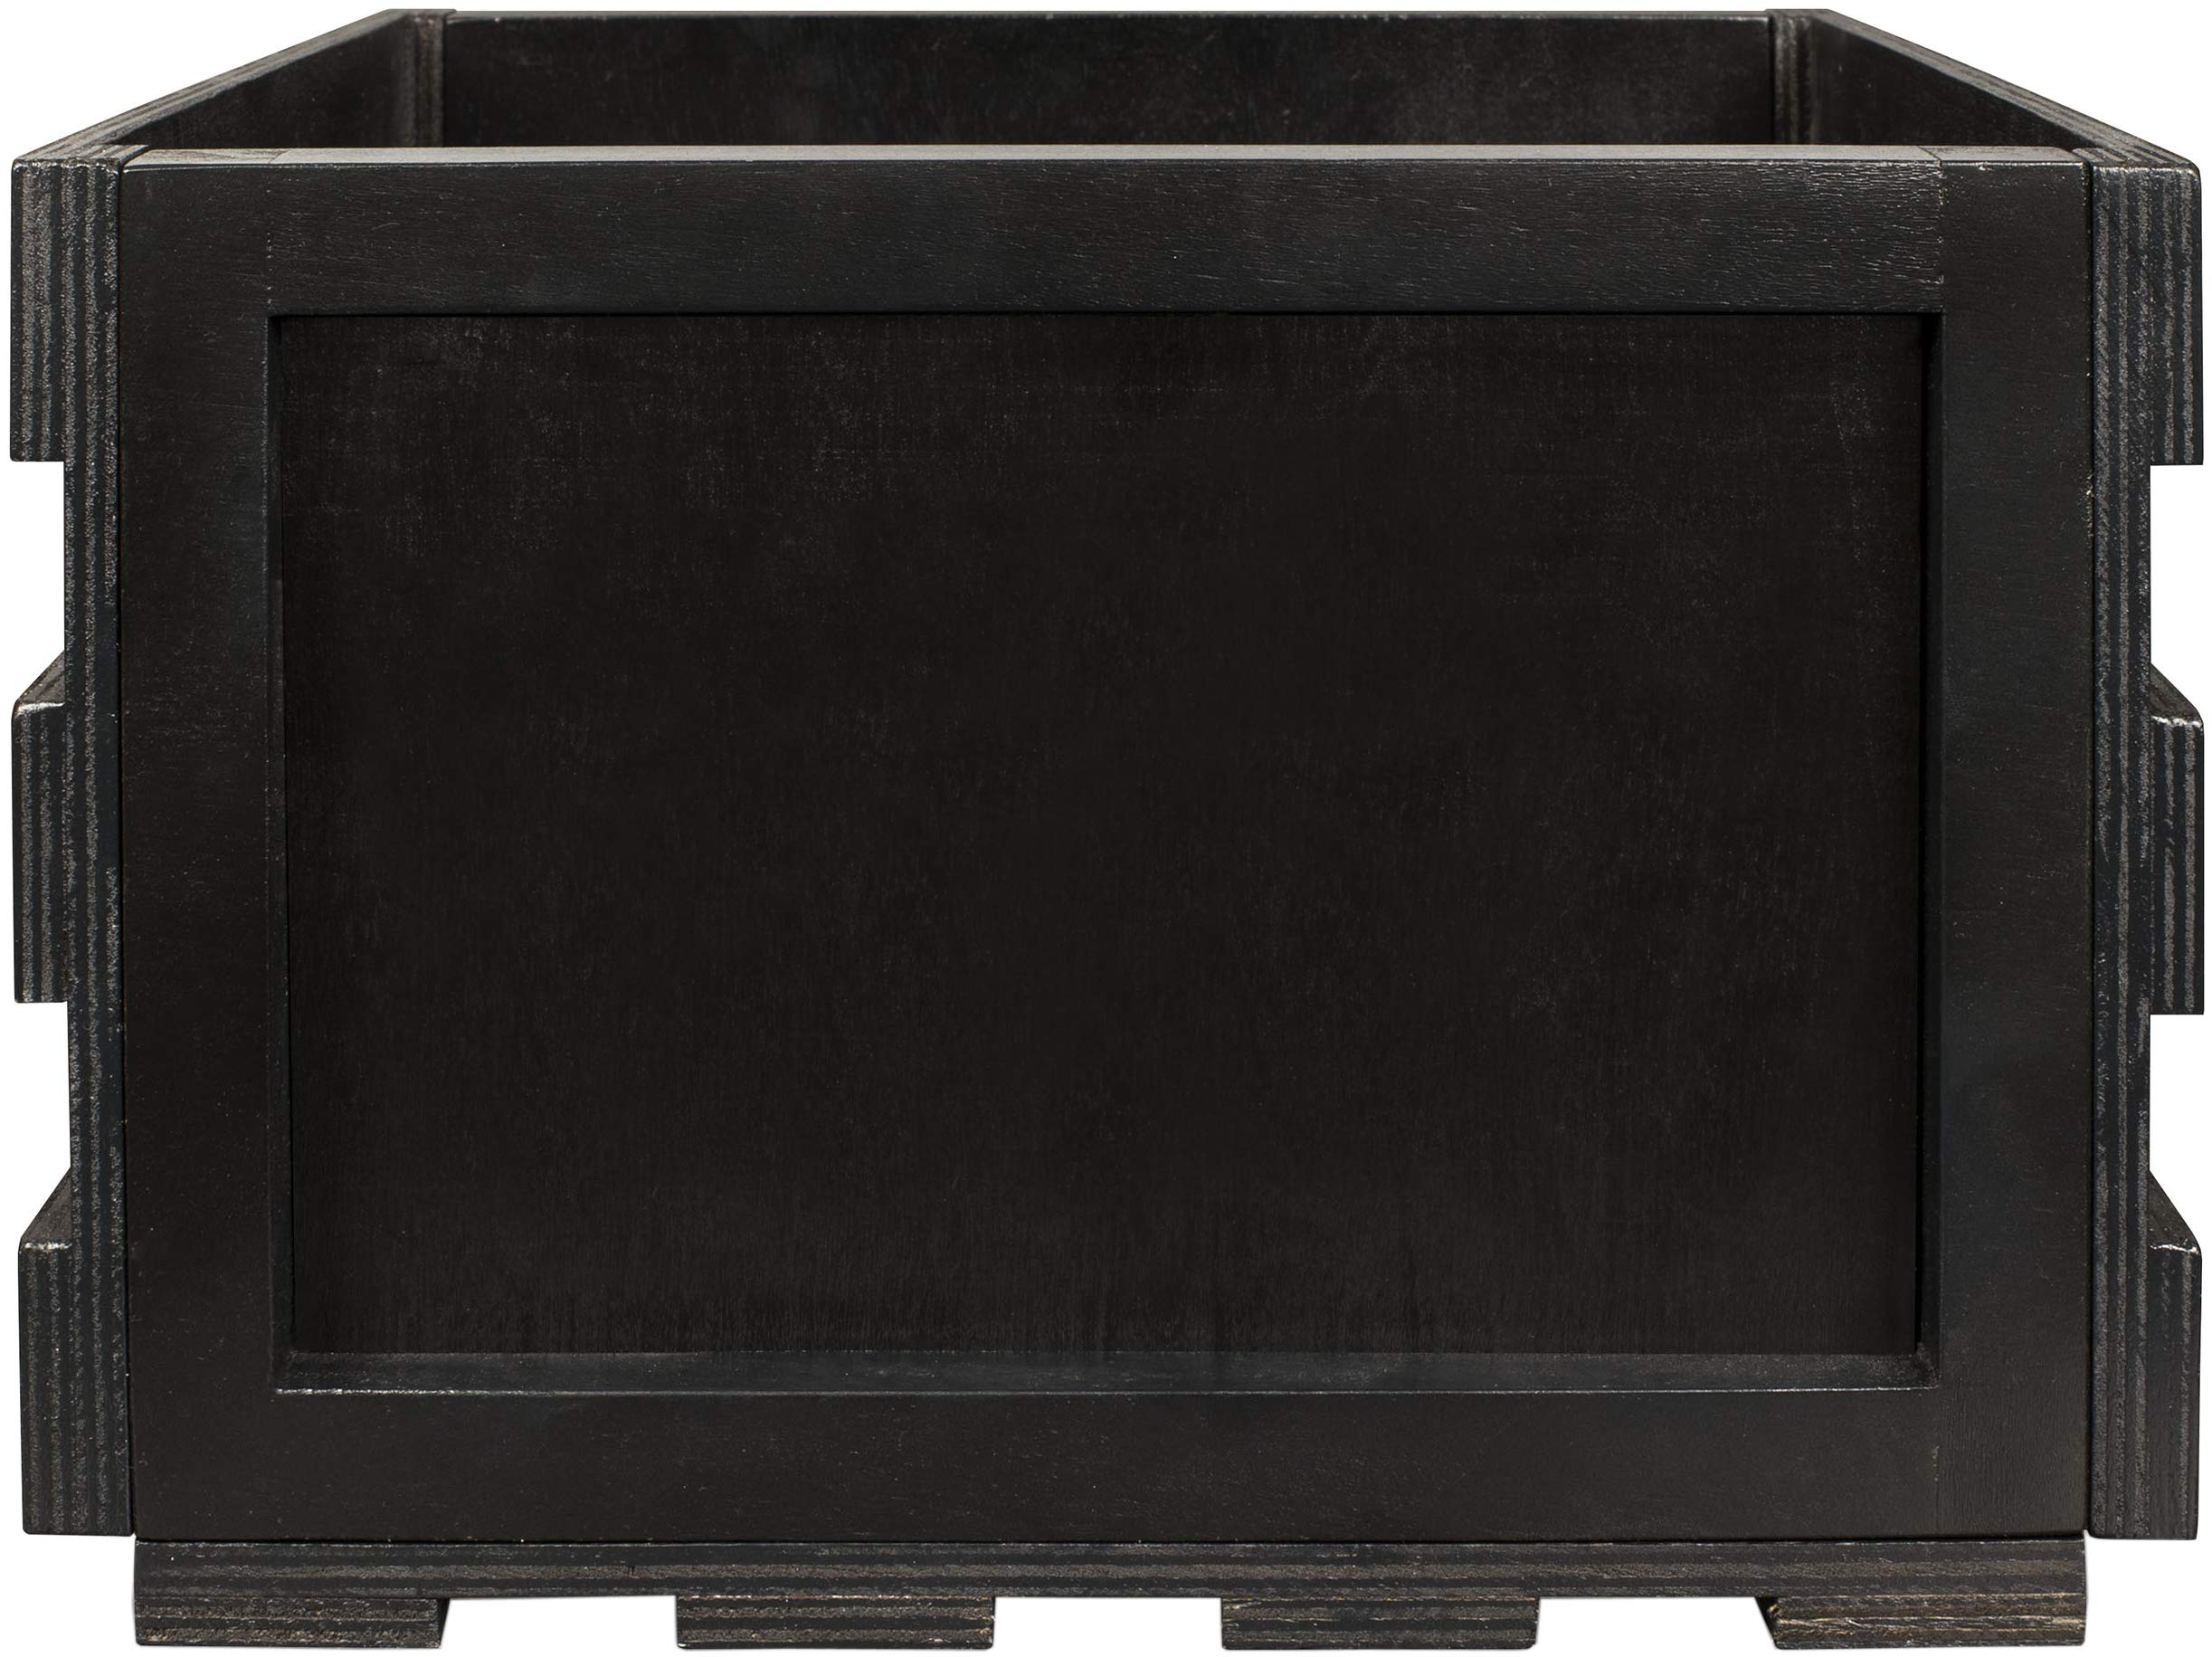 Crosley AC1004A-BK Record Storage Crate Holds up to 75 Albums, Black by Crosley (Image #5)